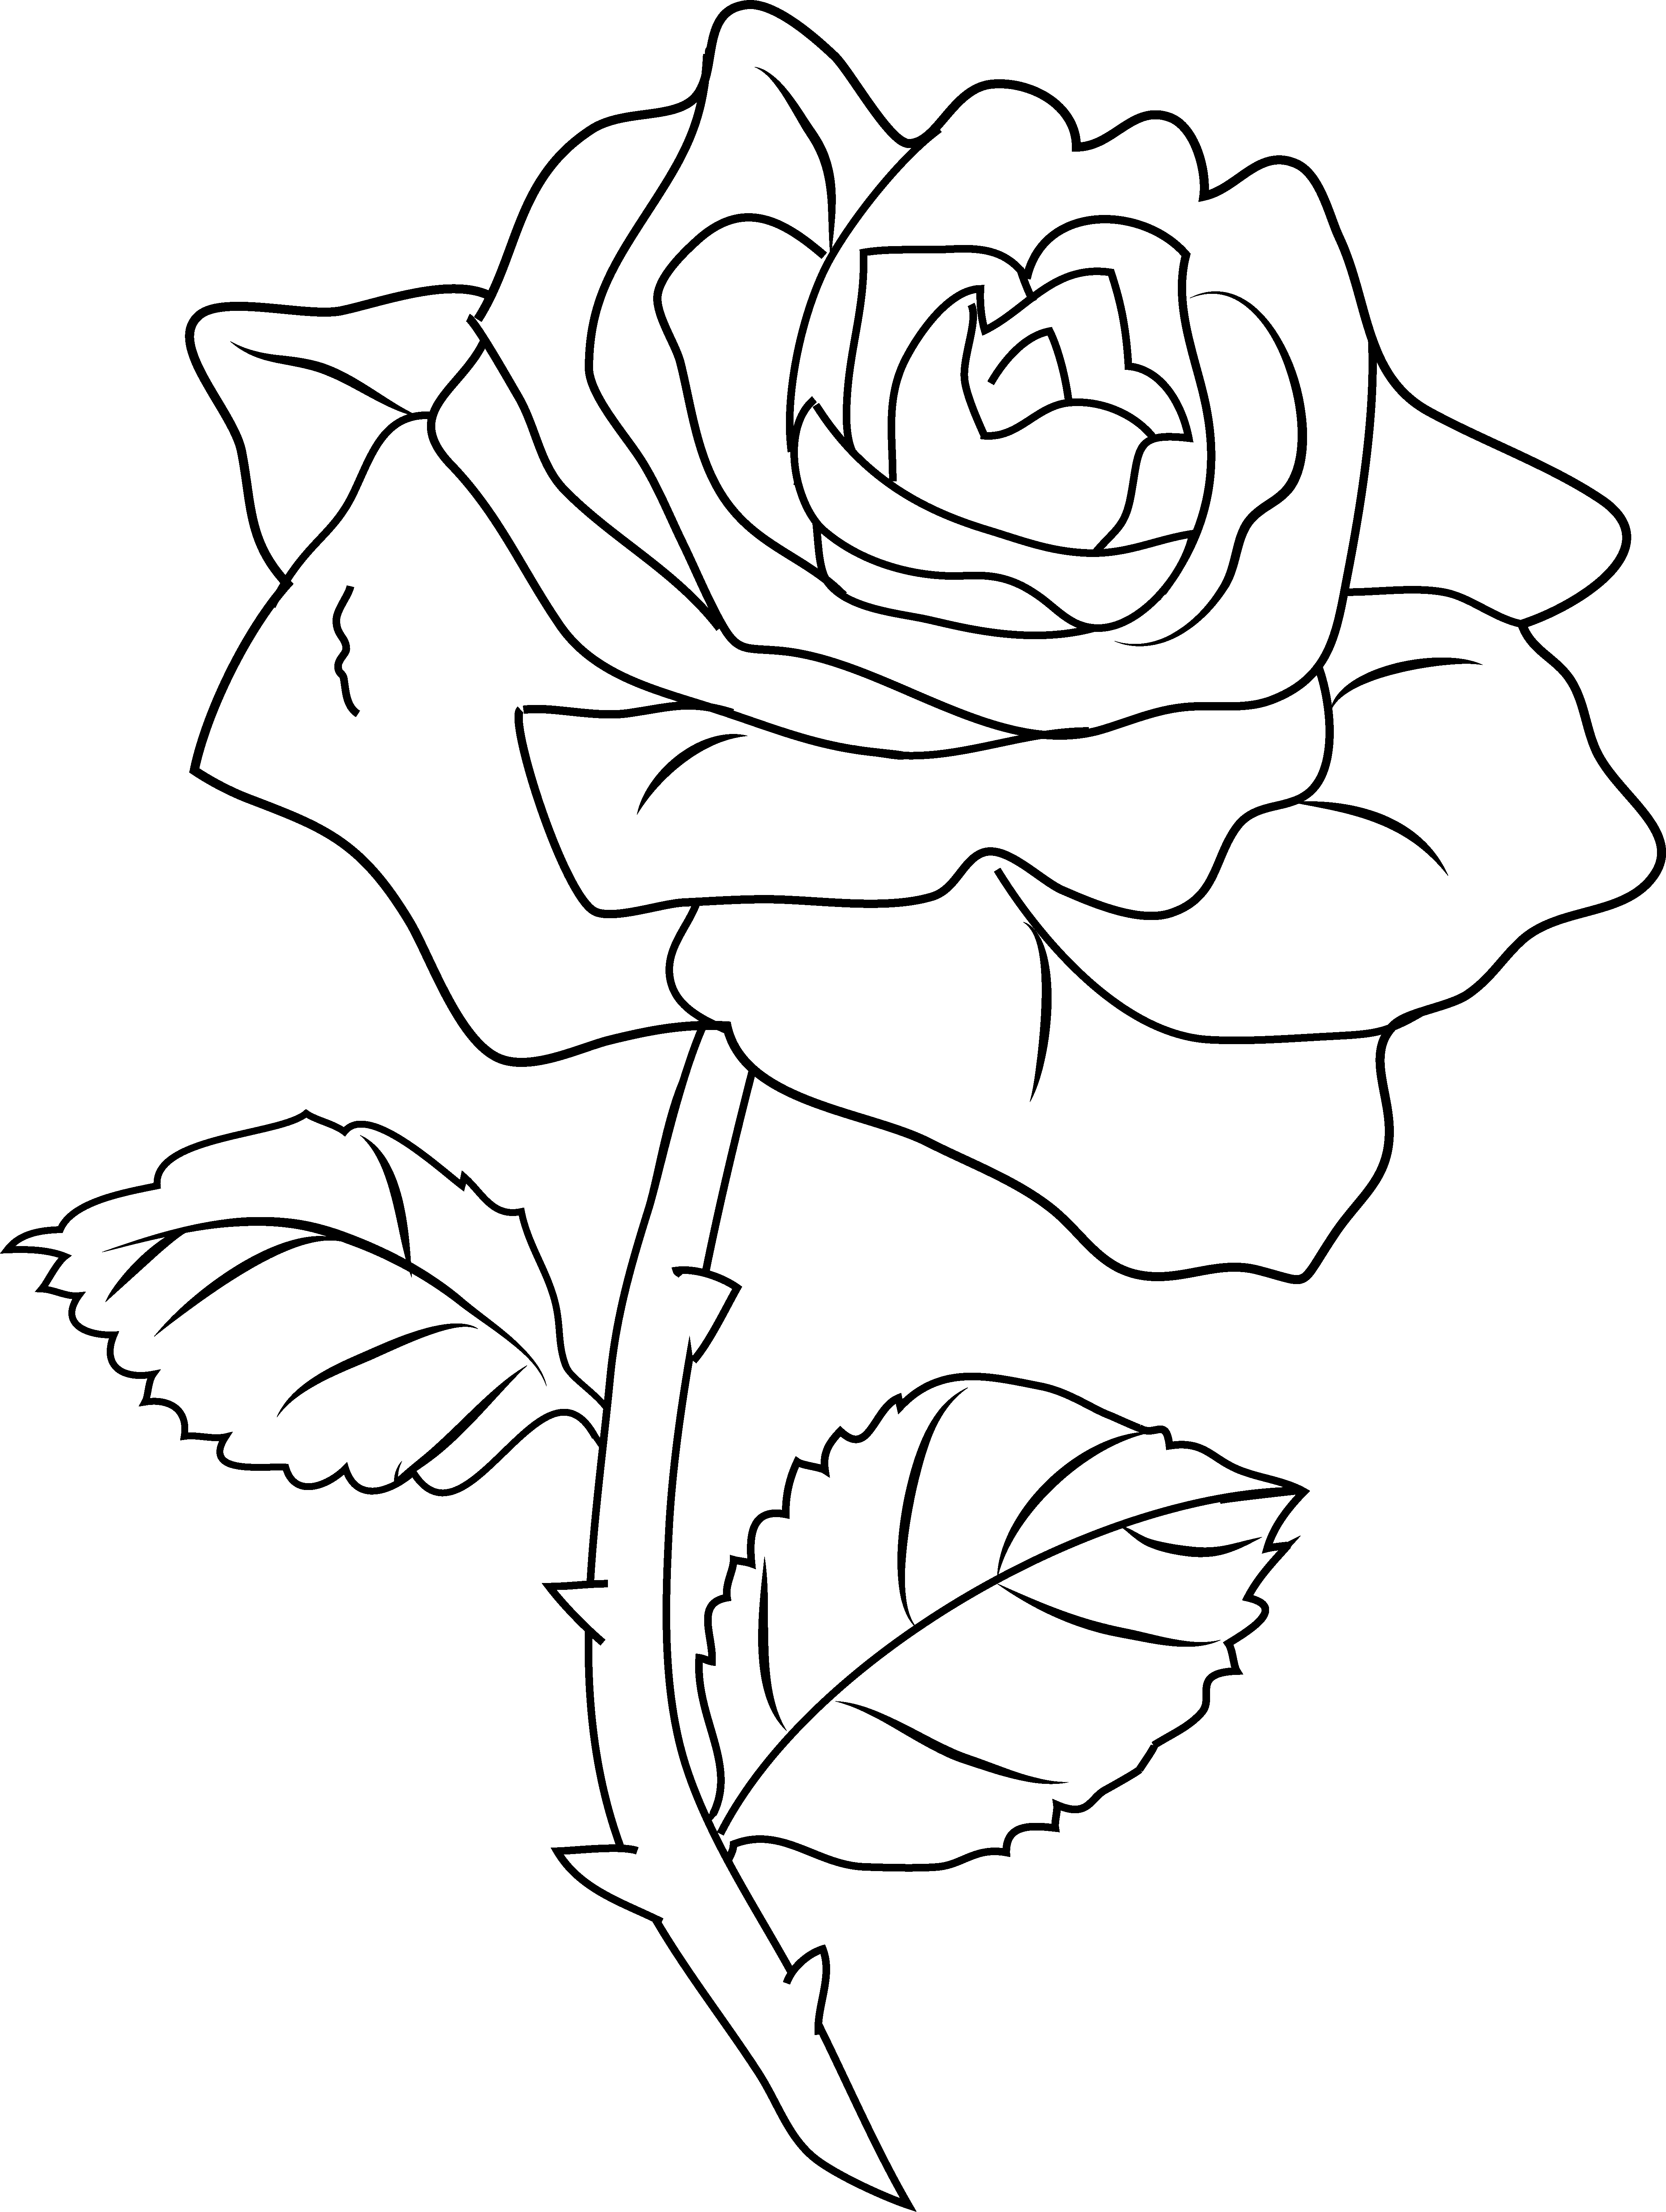 coloring page rose free roses printable adult coloring page the graphics fairy rose coloring page